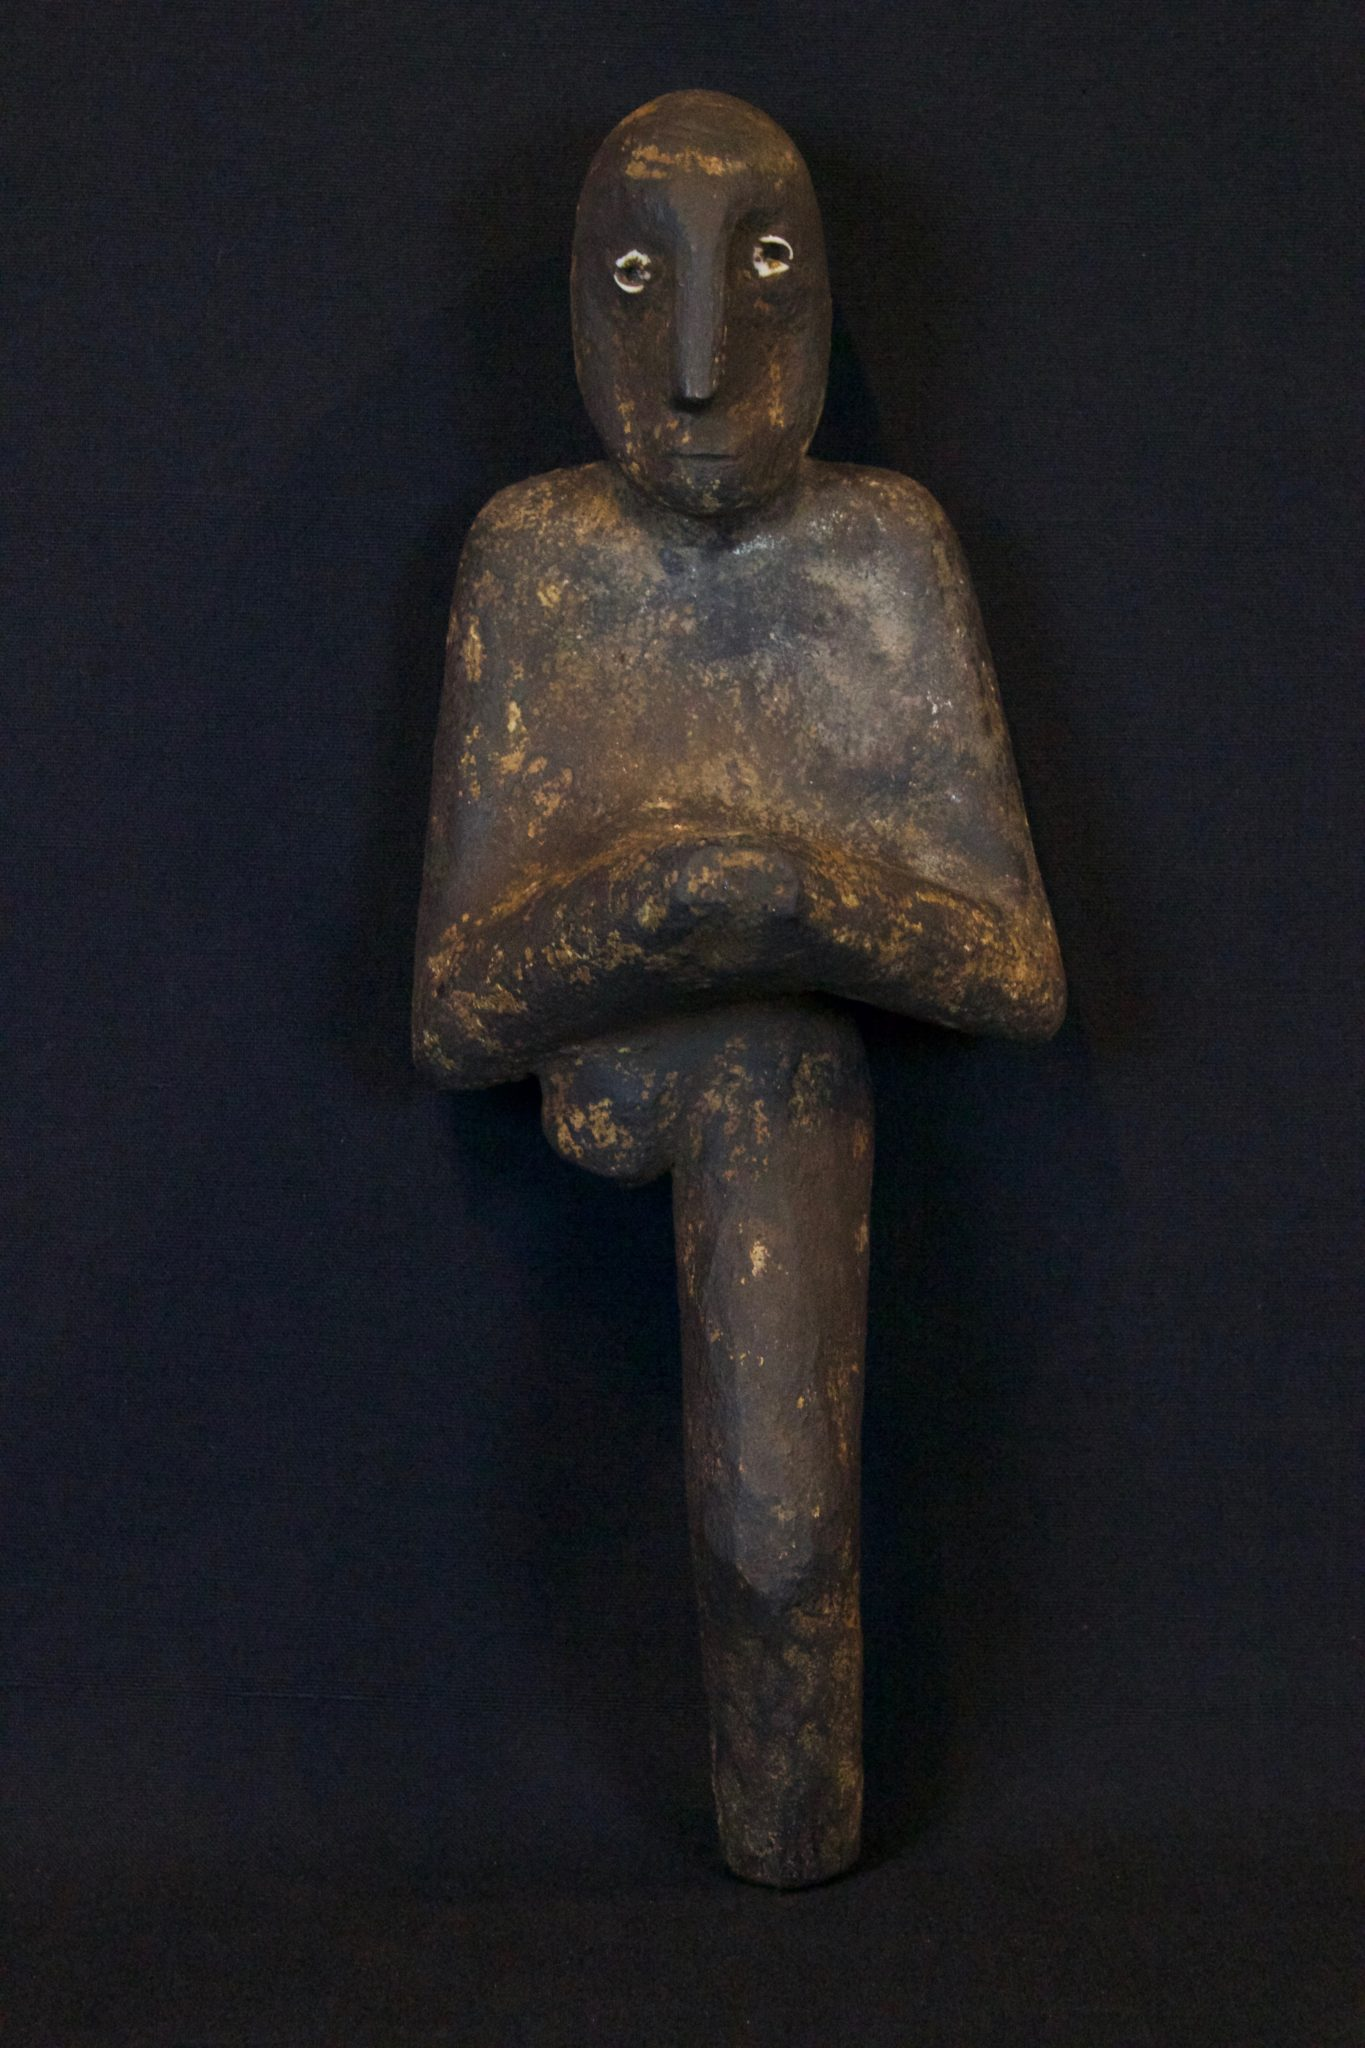 """Shaman Healing Fetish, Kalimantan, Borneo, Indonesia, Dayak tribe, Early to mid 20th c, Wood, pigment, patina. Held in shaman's hand during ritual for healing calling the spirits 10 ½"""" x 4"""" x 3 ½"""", $420."""